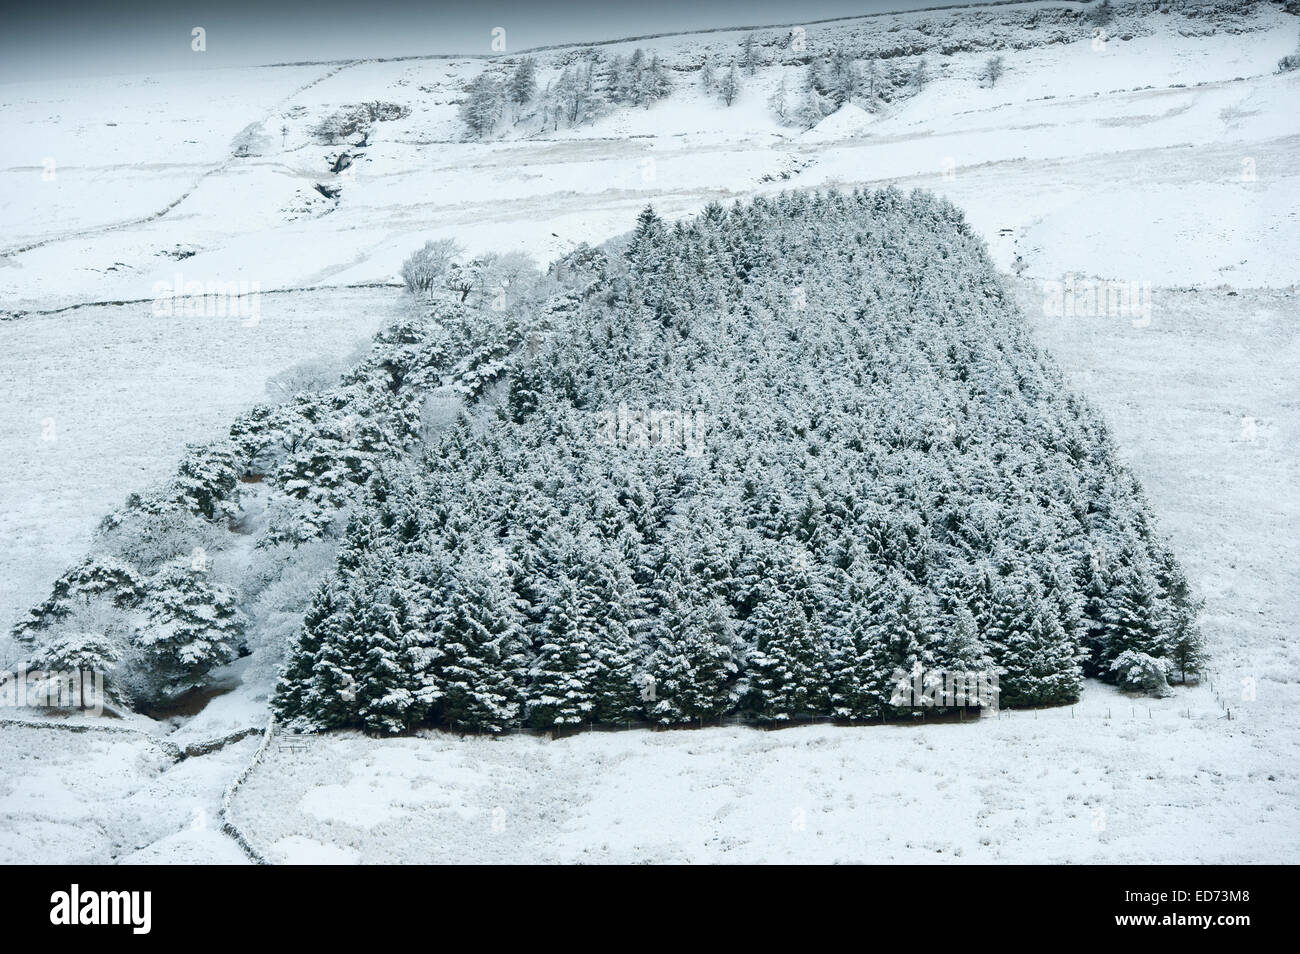 Snow covered conifer wood, Wensleydale, UK - Stock Image